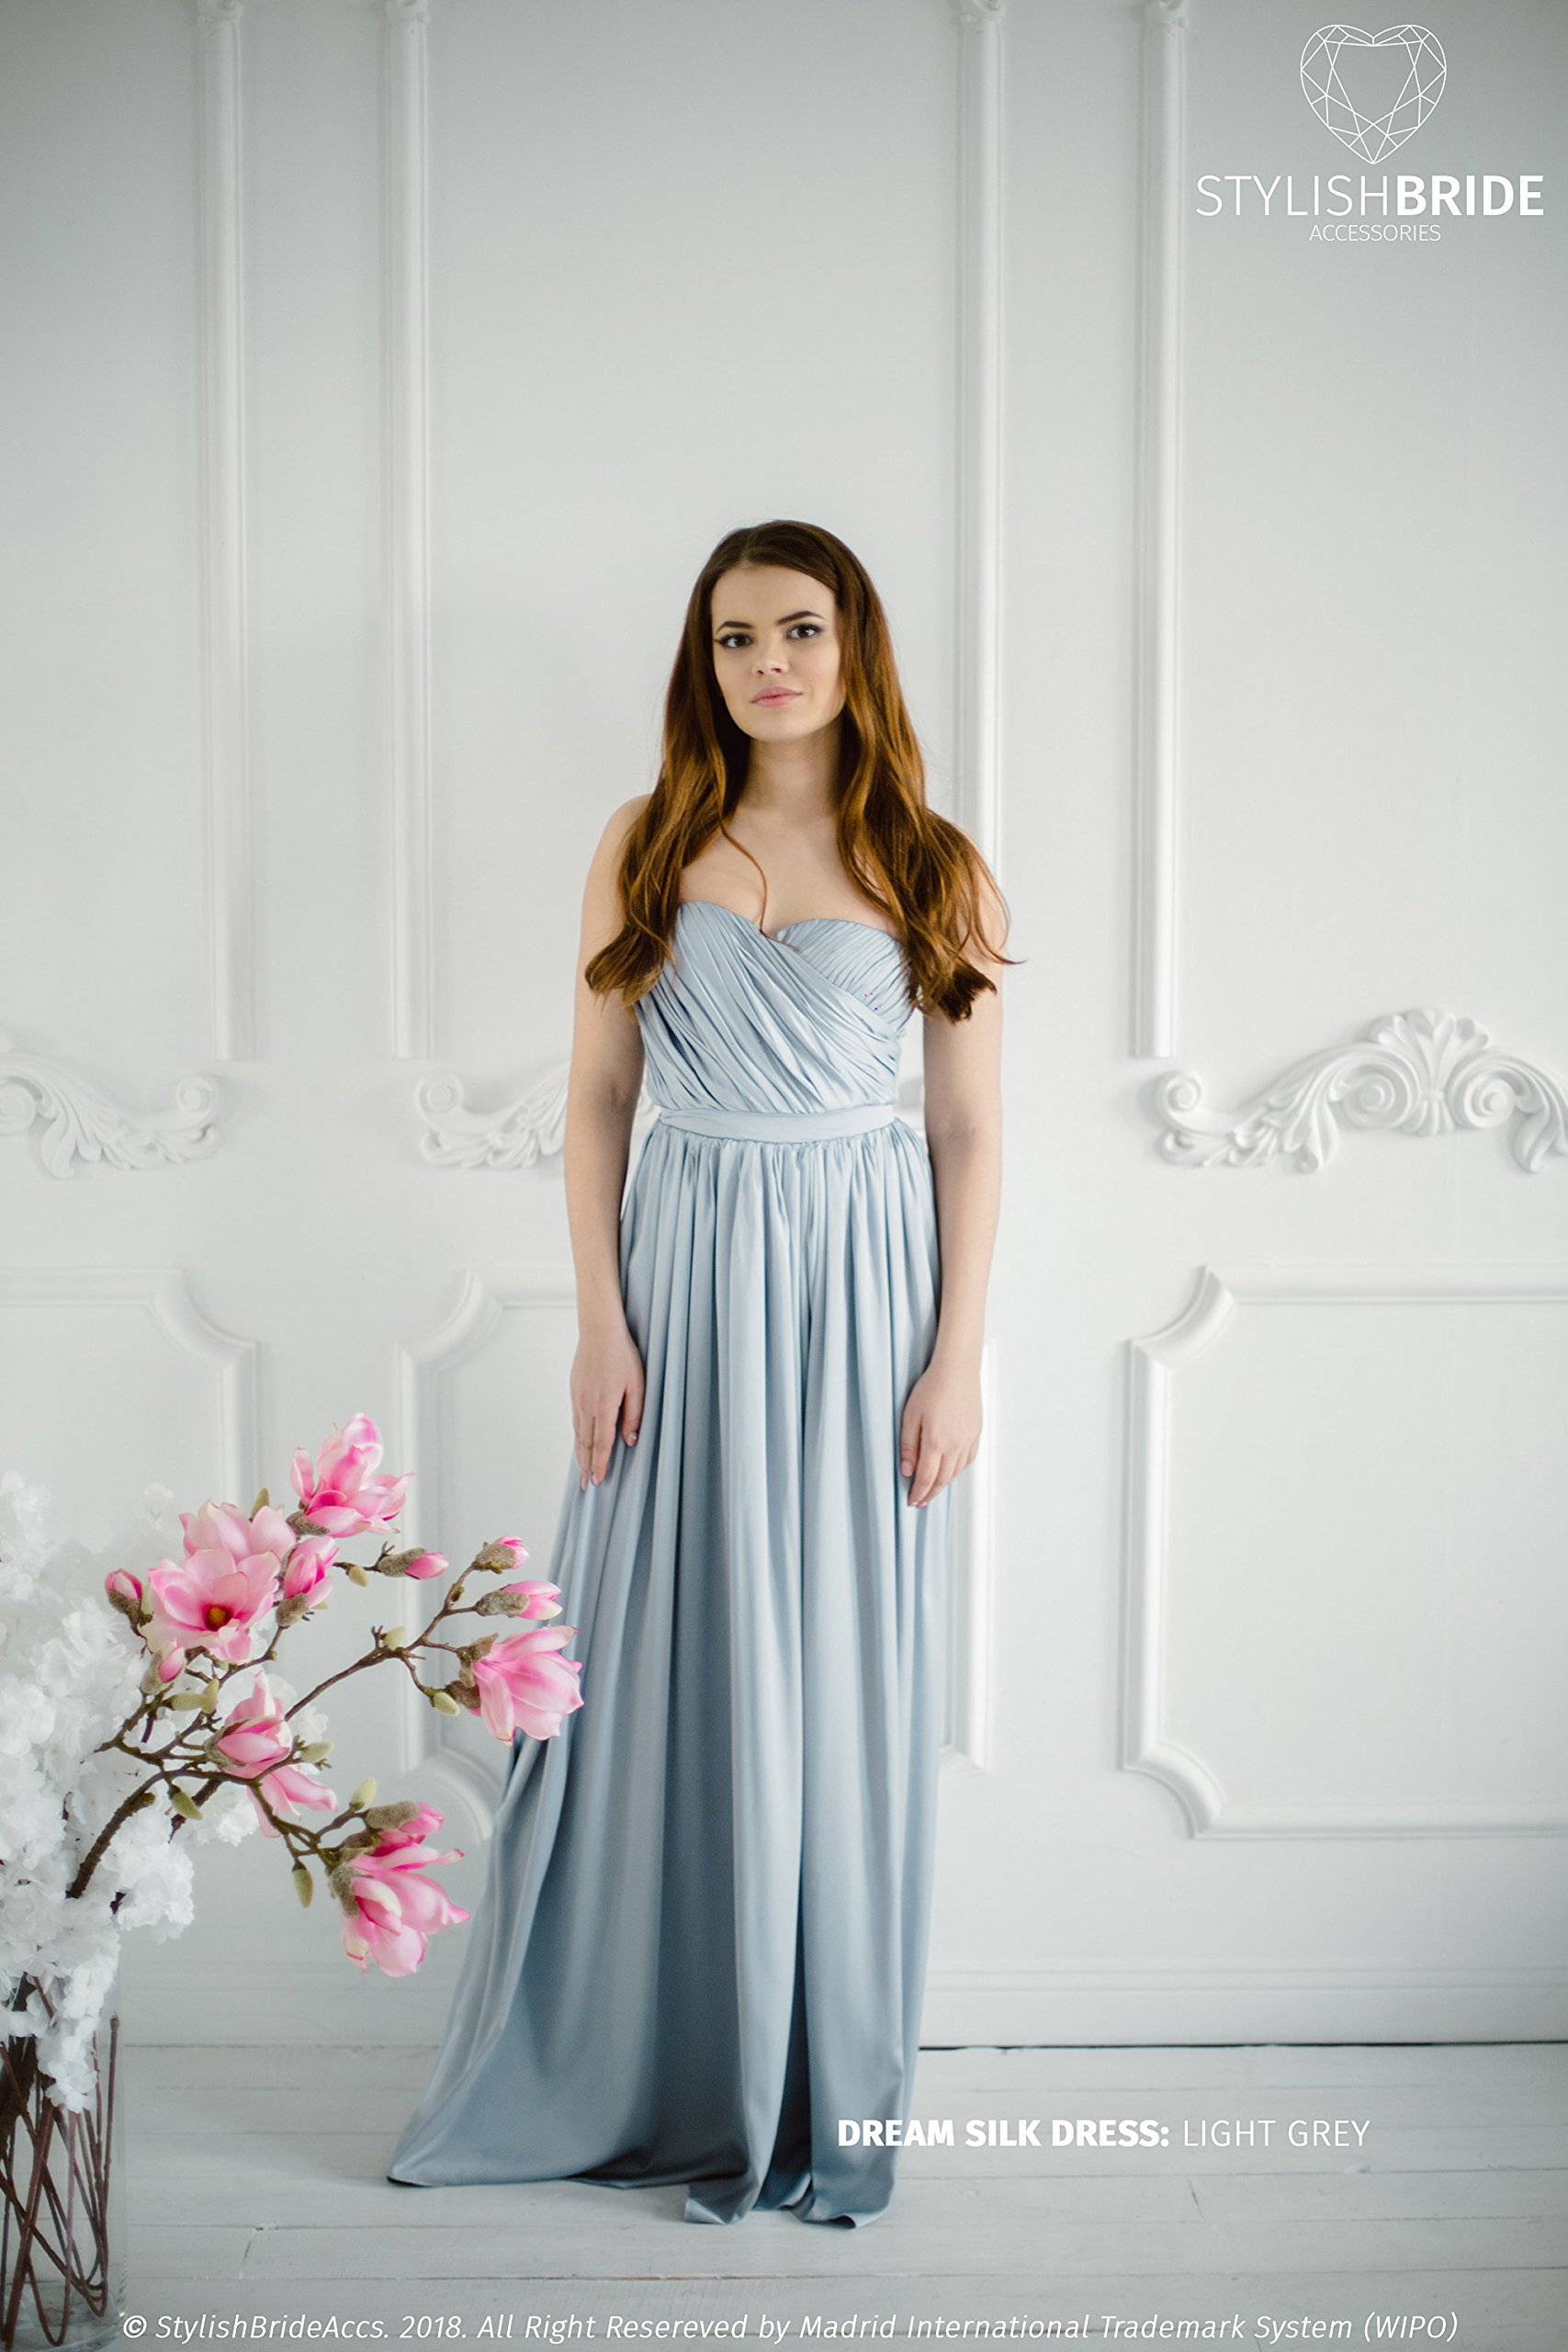 Dream Bridesmaid Silk Satin Dress in Light Grey, Simple bridesmaid dresses, plus size prom dress, Sweetheart Strapless Silk Maxi Dress